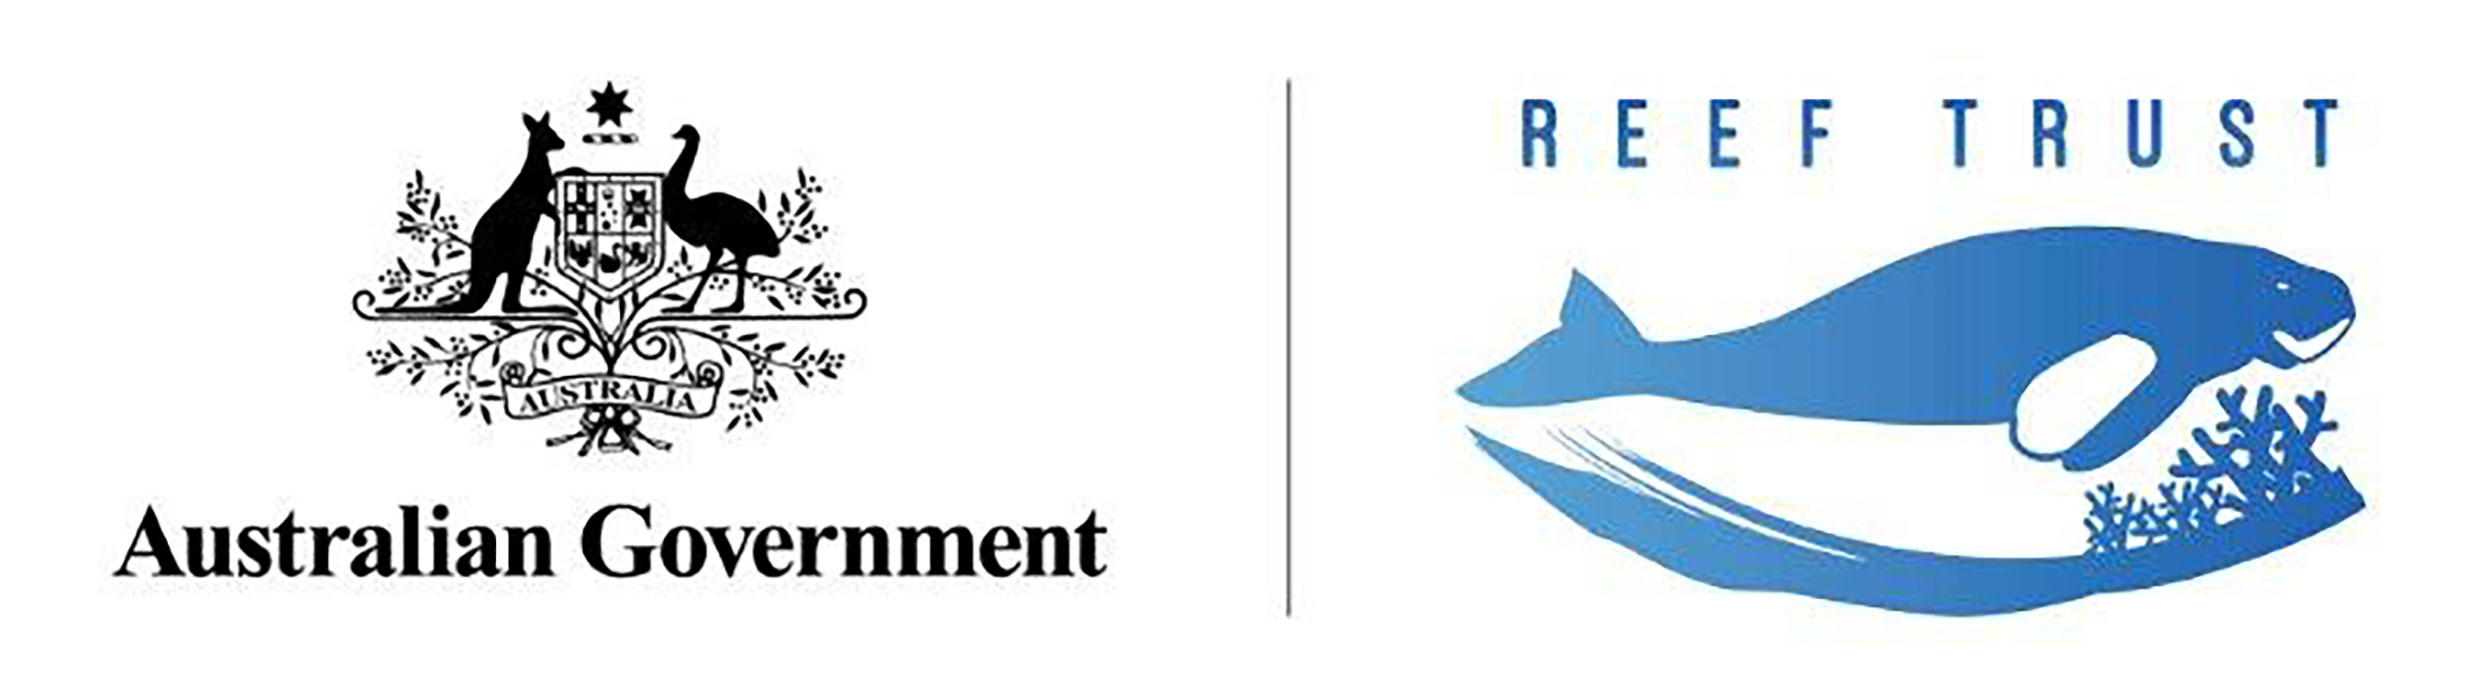 The Reef Trust and Australian Government logo